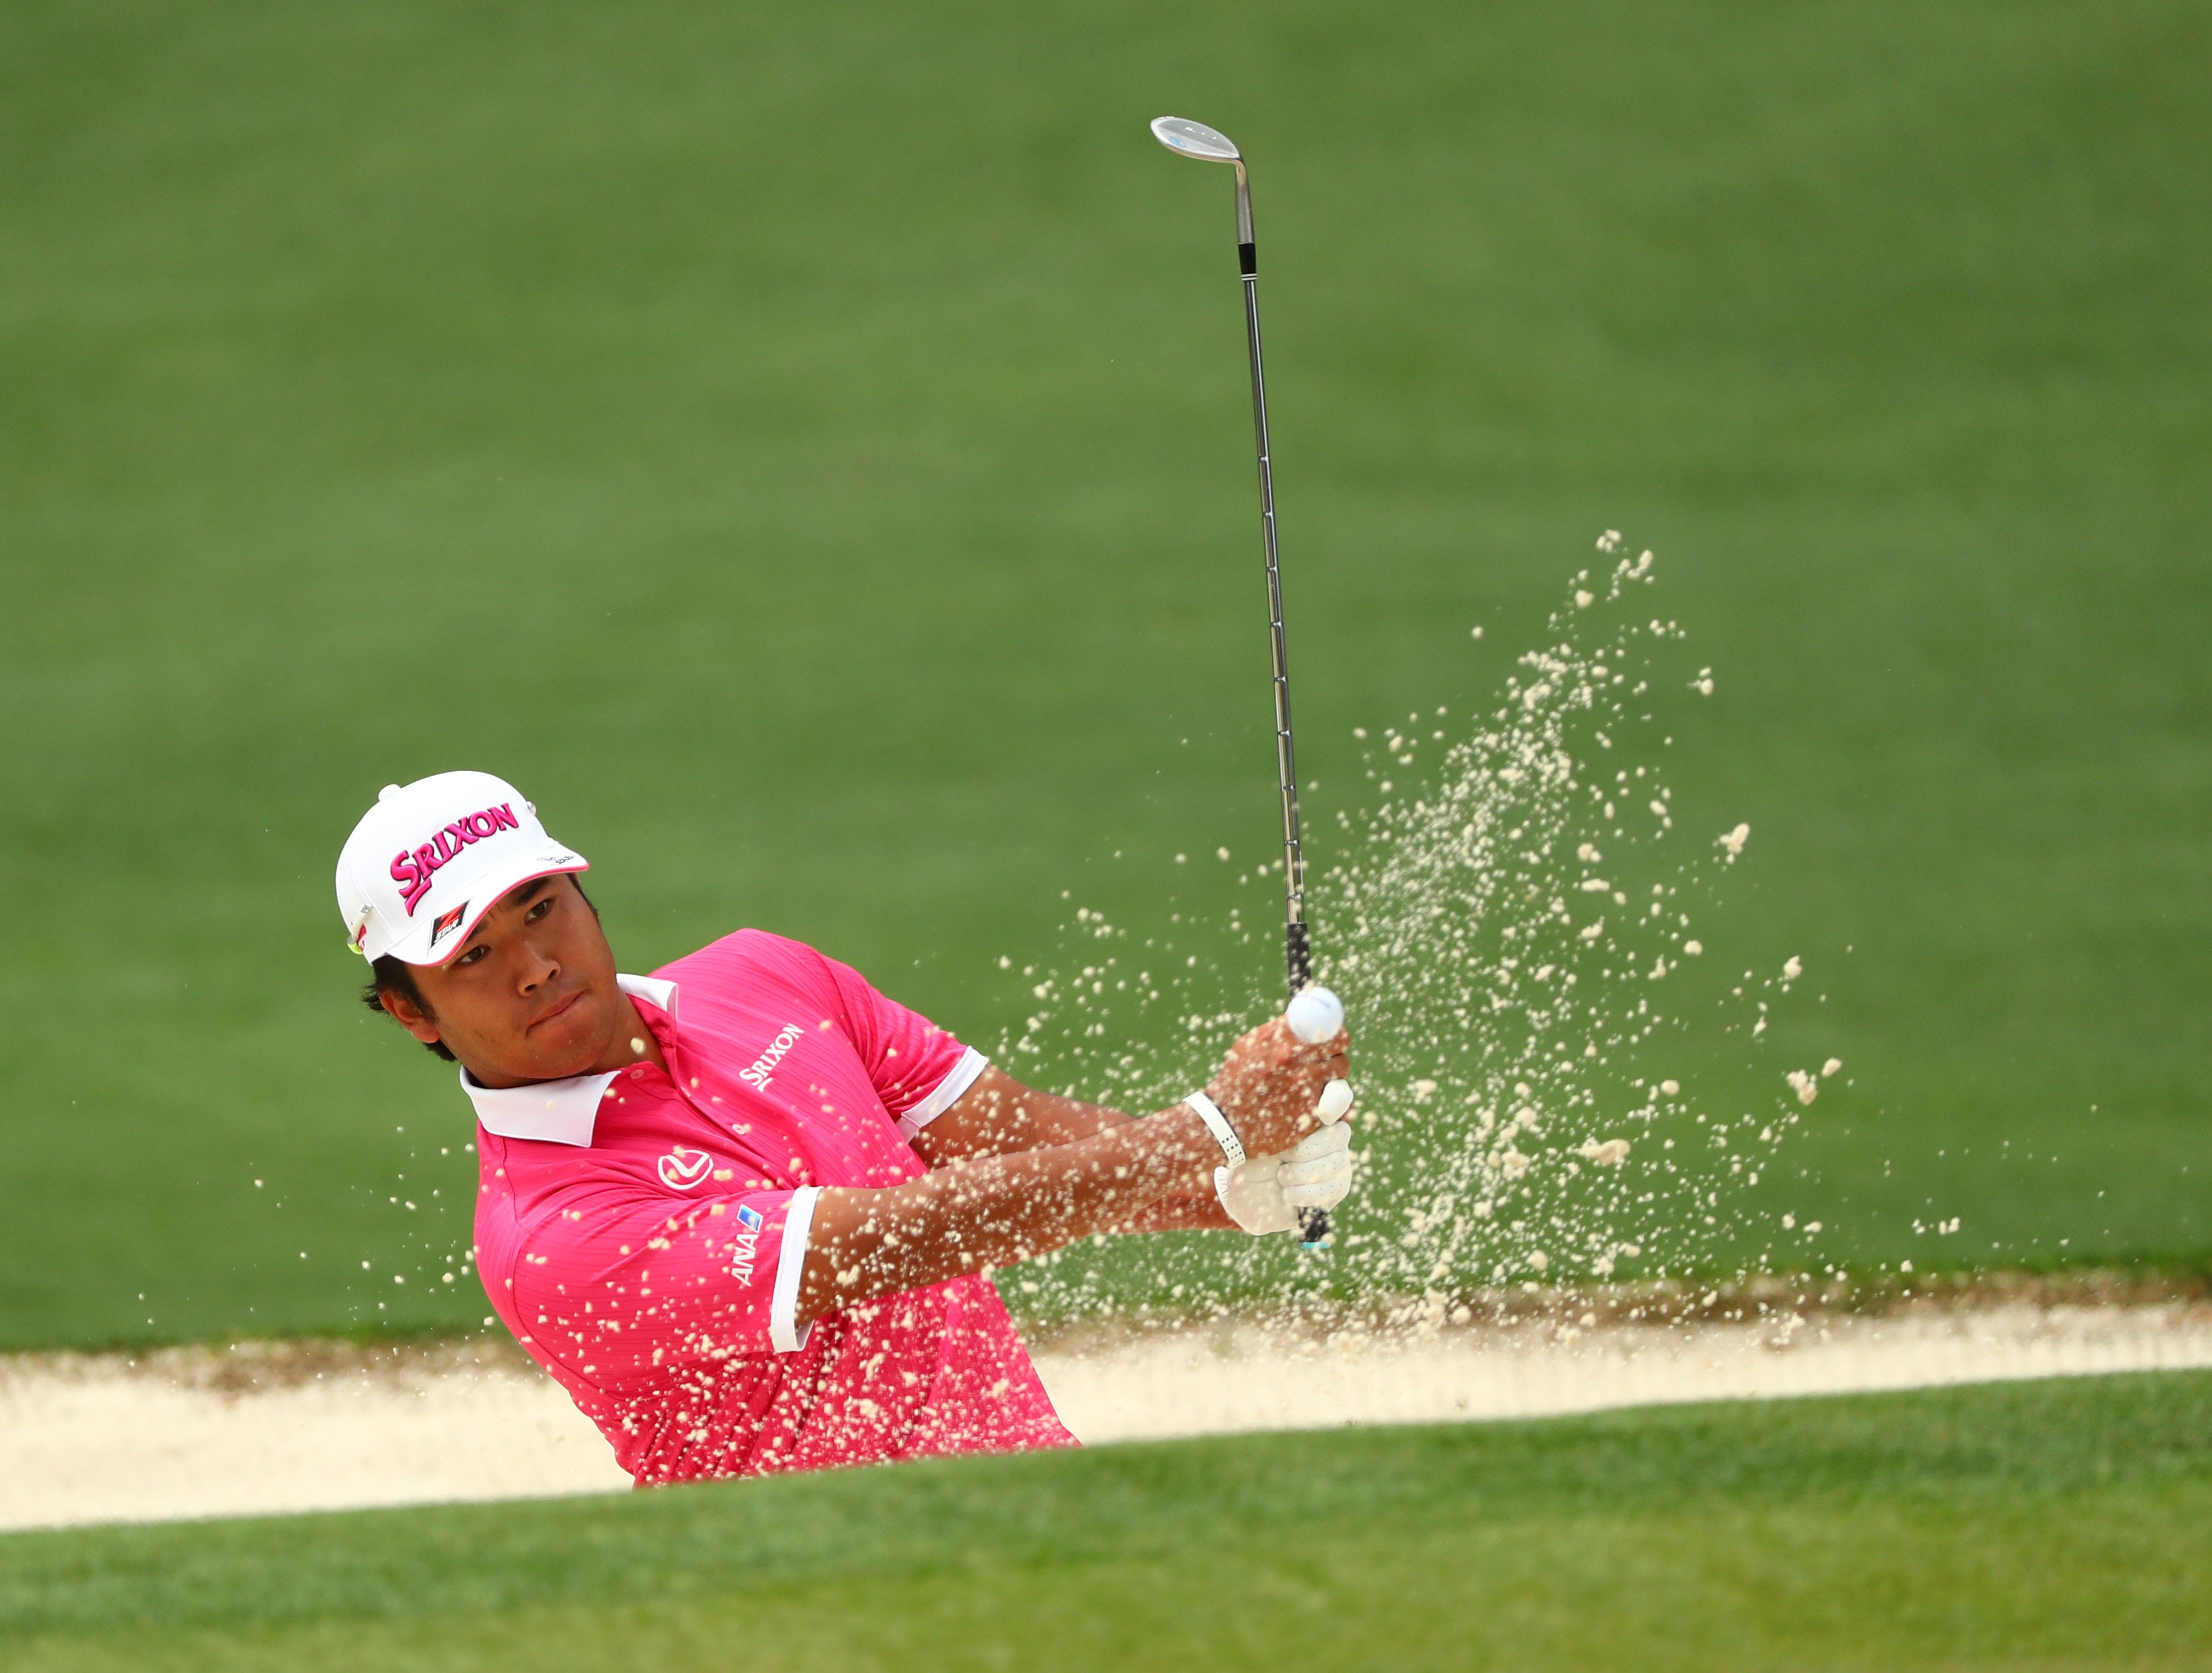 Apr 12, 2019; Augusta, GA, USA; Hideki Matsuyama hits out of a bunker on the 2nd hole during the second round of The Masters golf tournament at Augusta National Golf Club. Mandatory Credit: Rob Schumacher-USA TODAY Sports